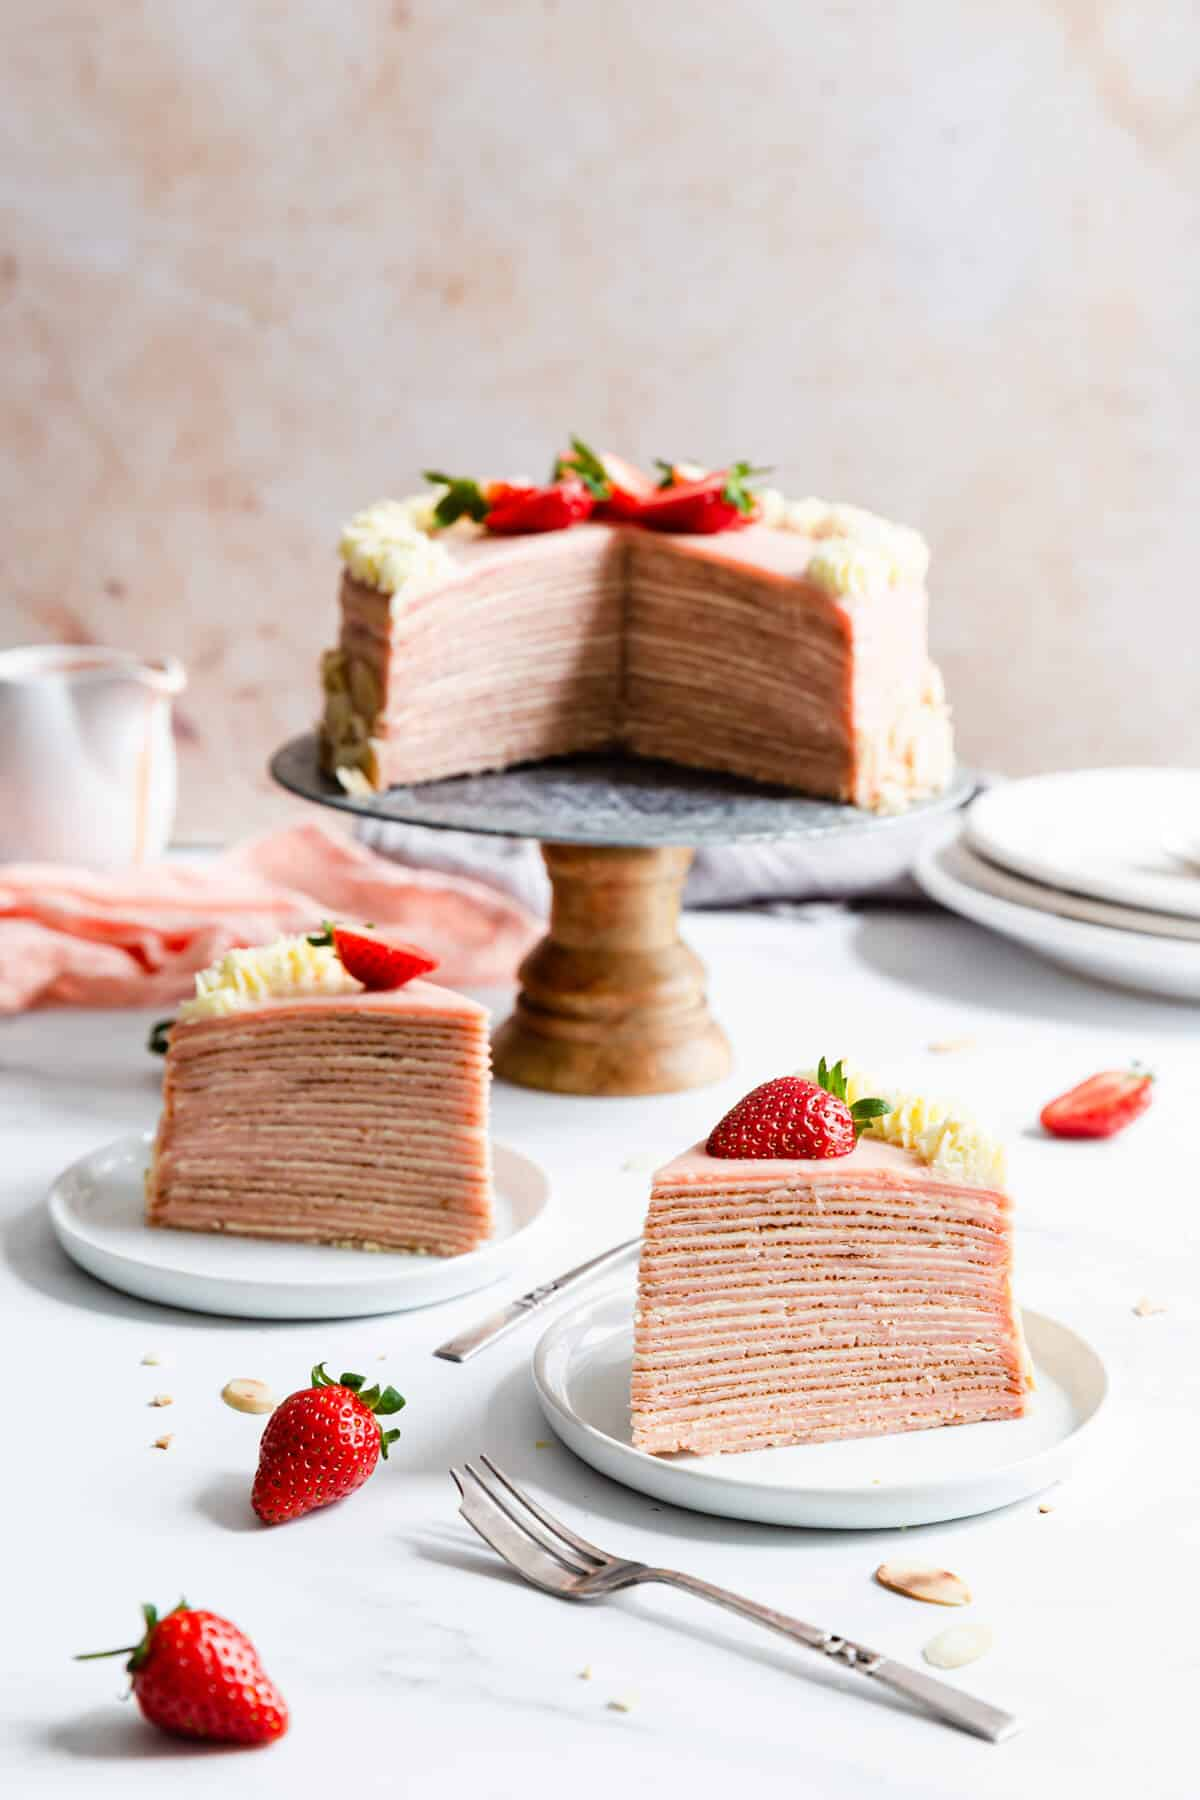 side shot of two individual slices of cake on small plates and cake in the back